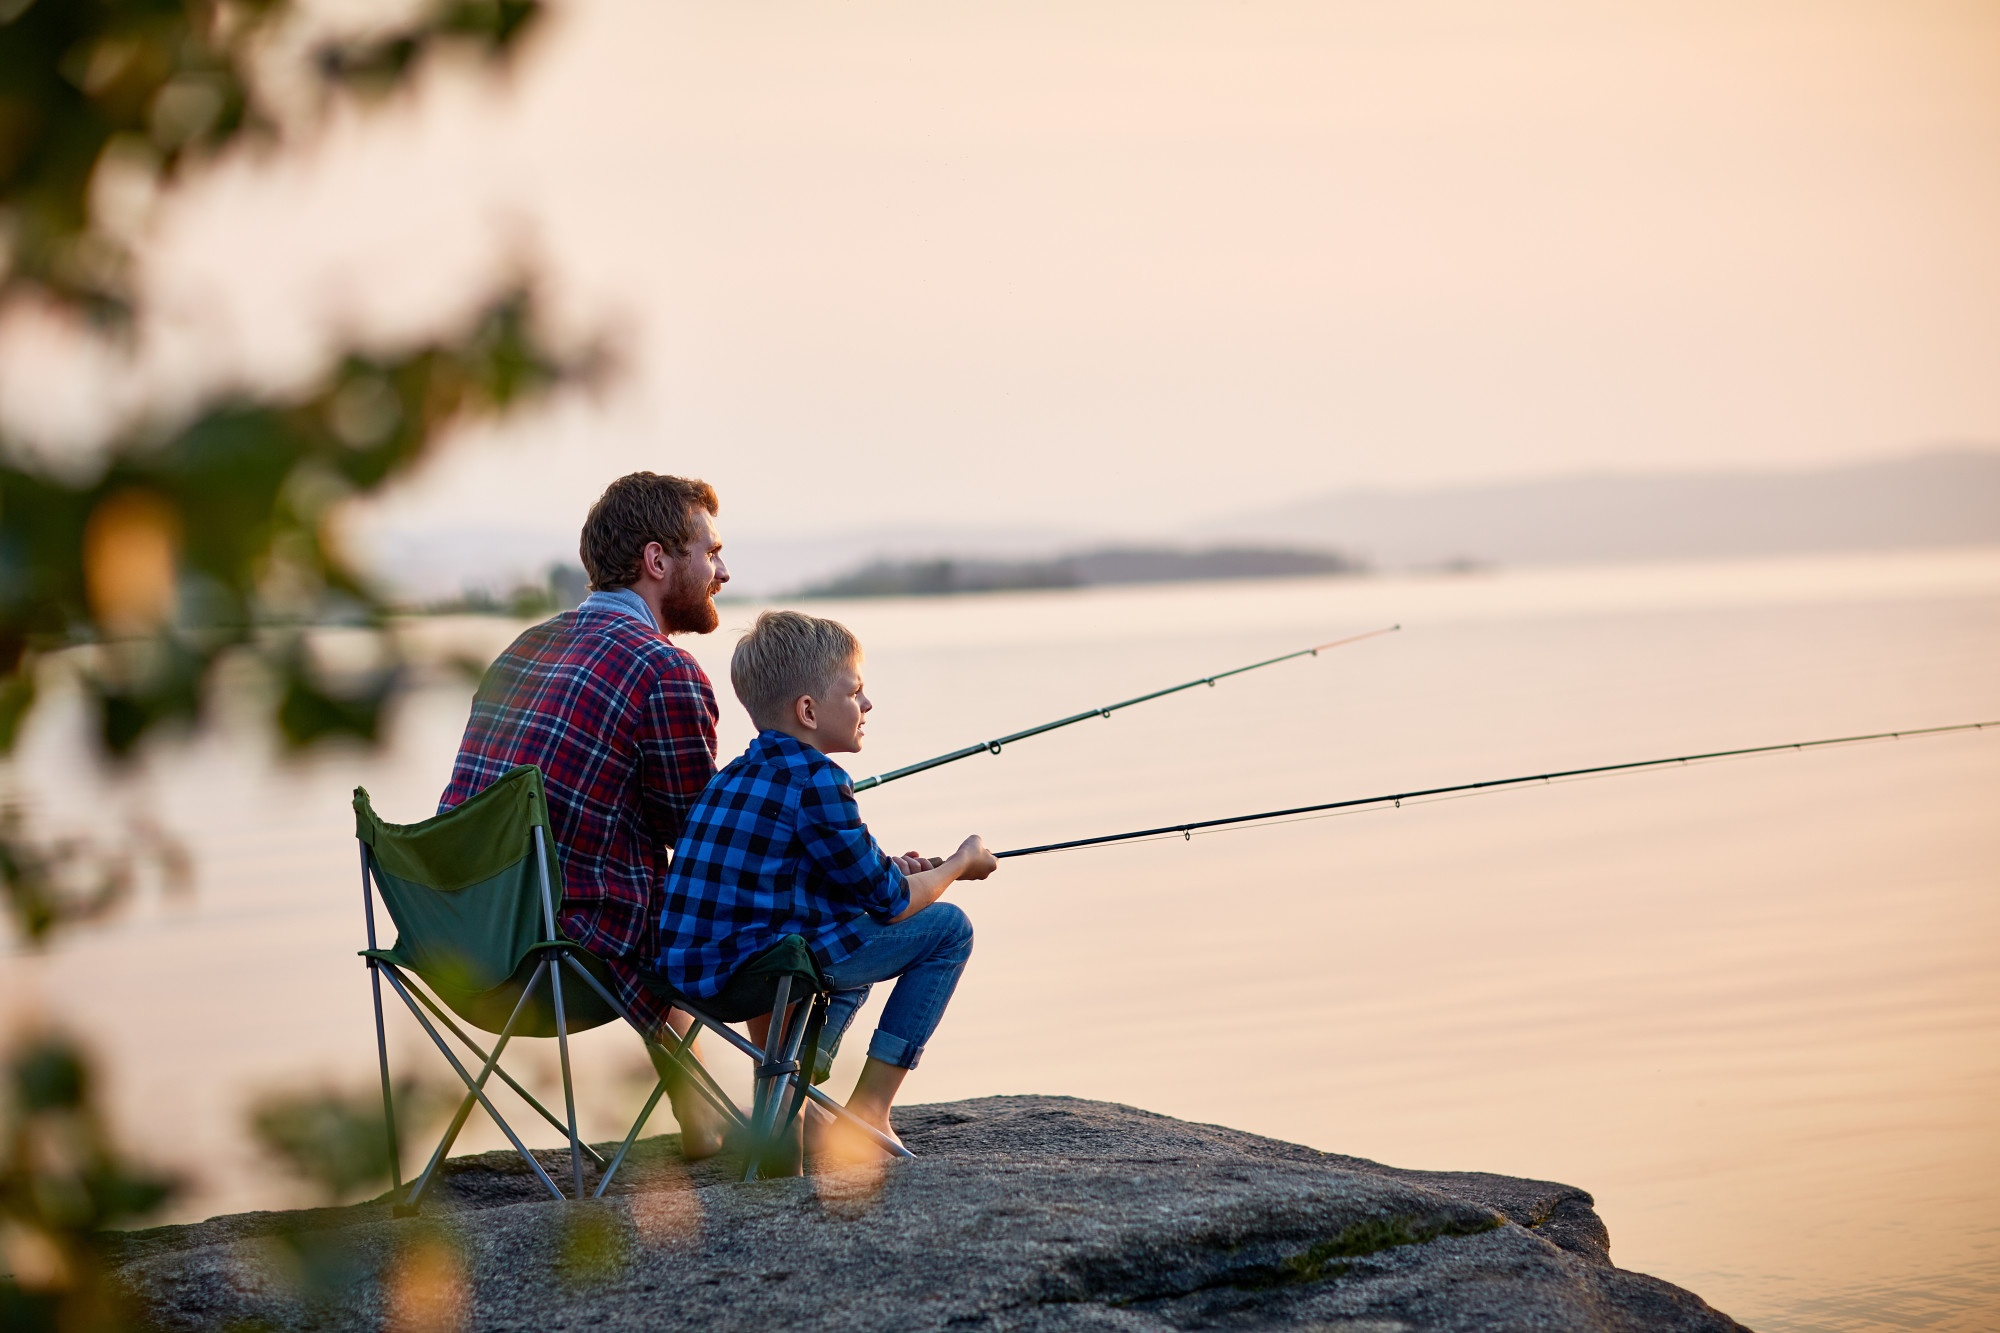 5 of the Best Father Son Bonding Activities